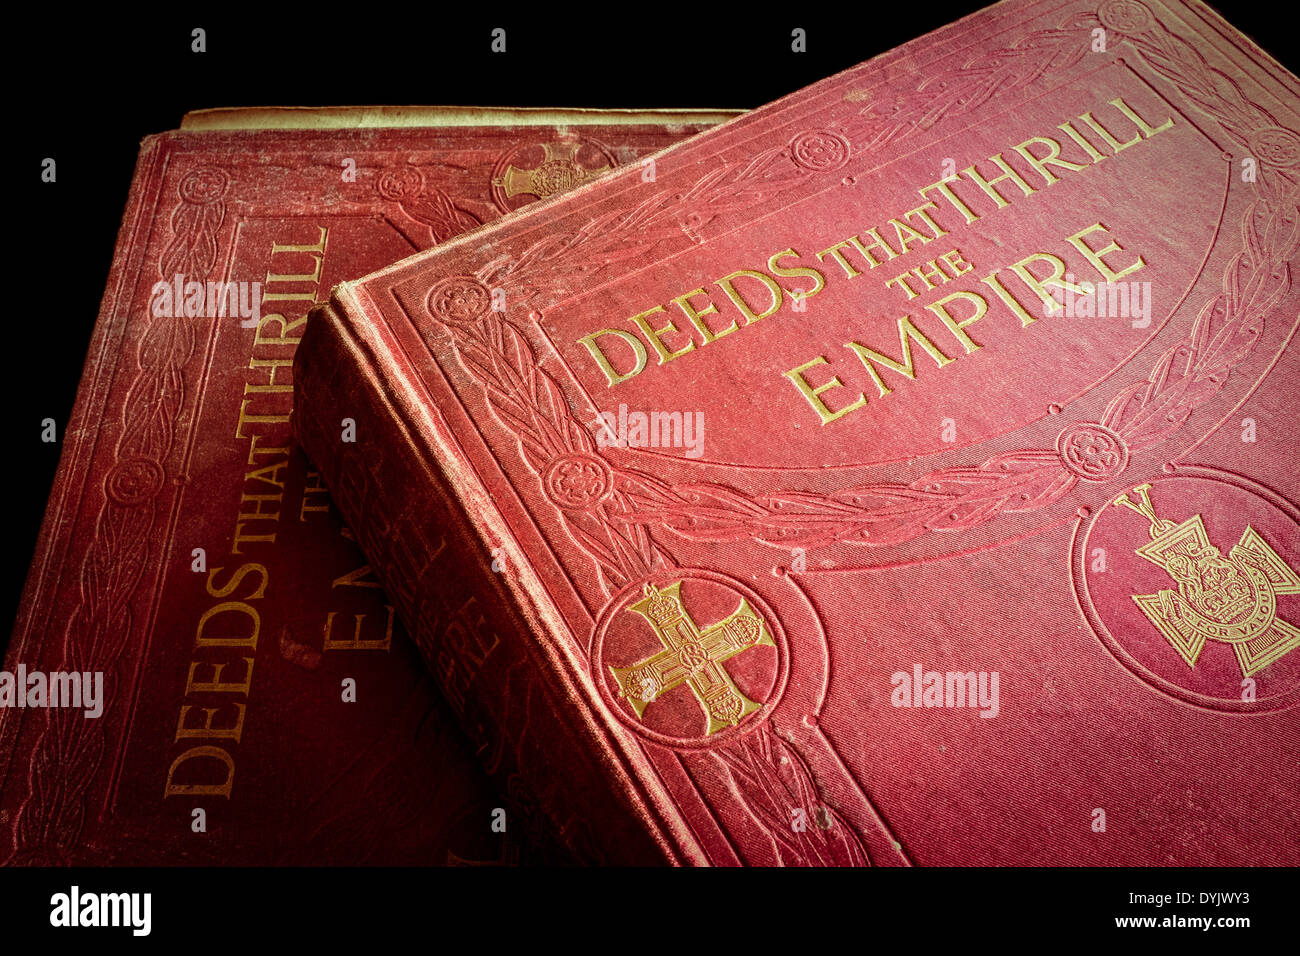 Two original volumes of  'Deeds that Thrill the Empire' - Stock Image